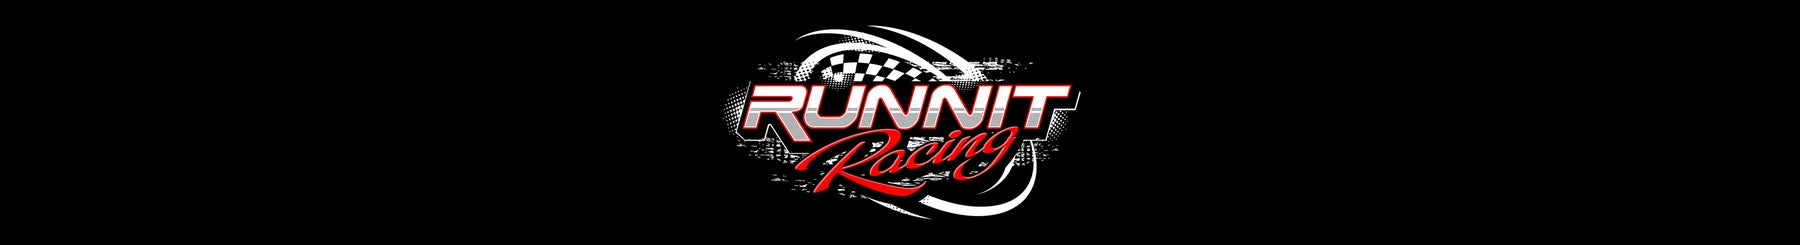 Runnit Racing